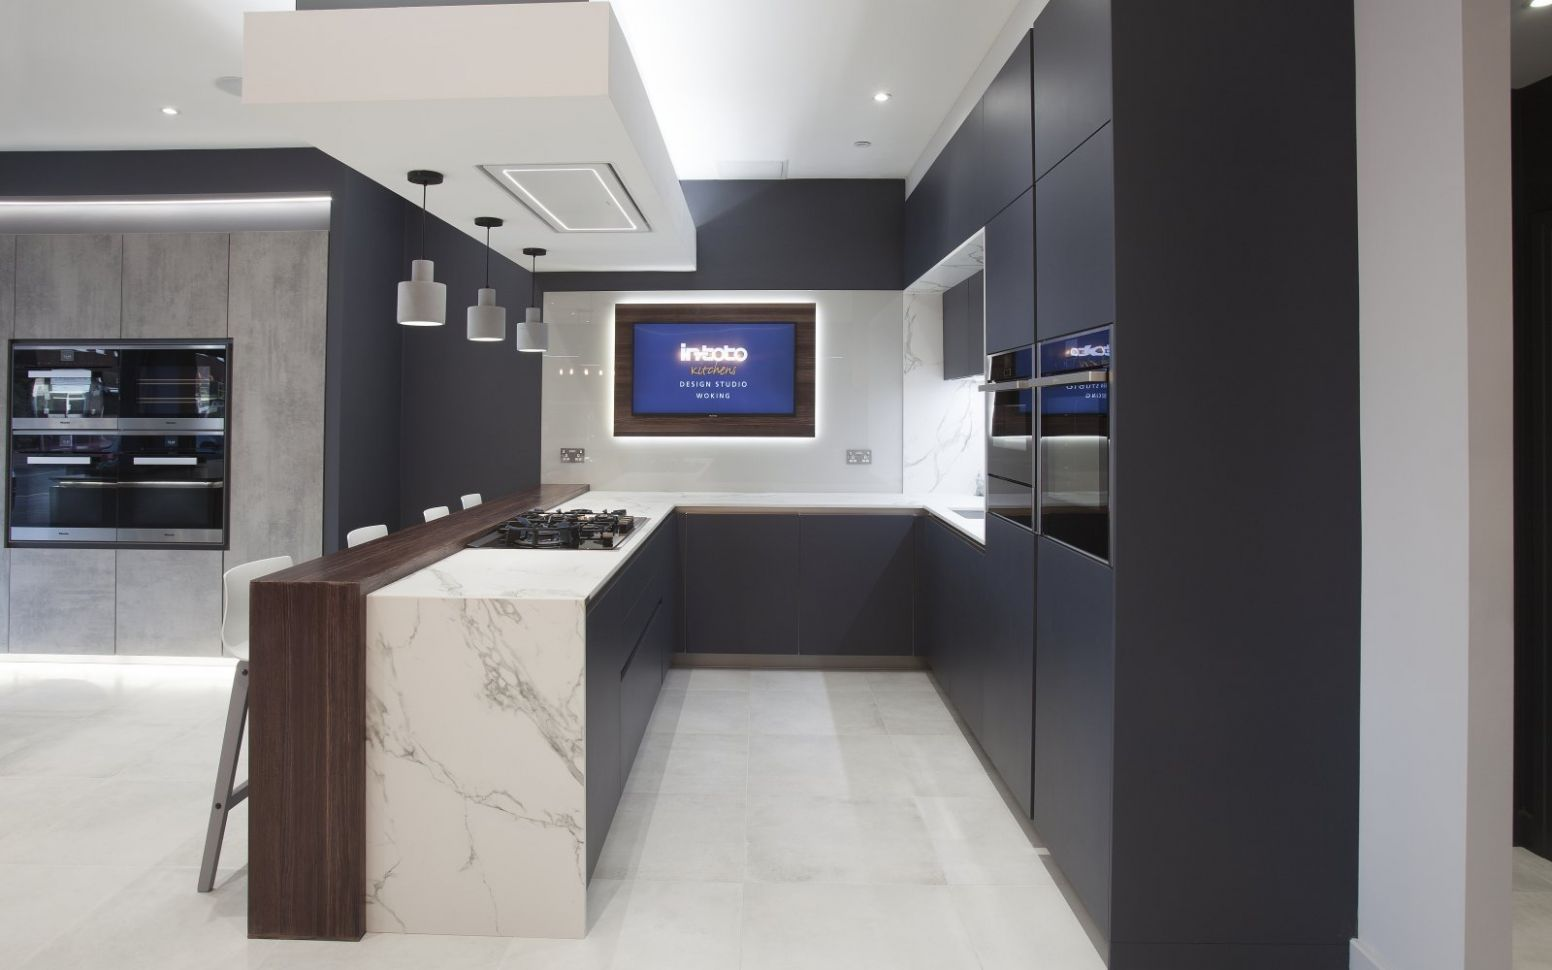 Woking kitchens - Woking fitted kitchens - in-toto kitchen showroom - kitchen ideas st johns woking